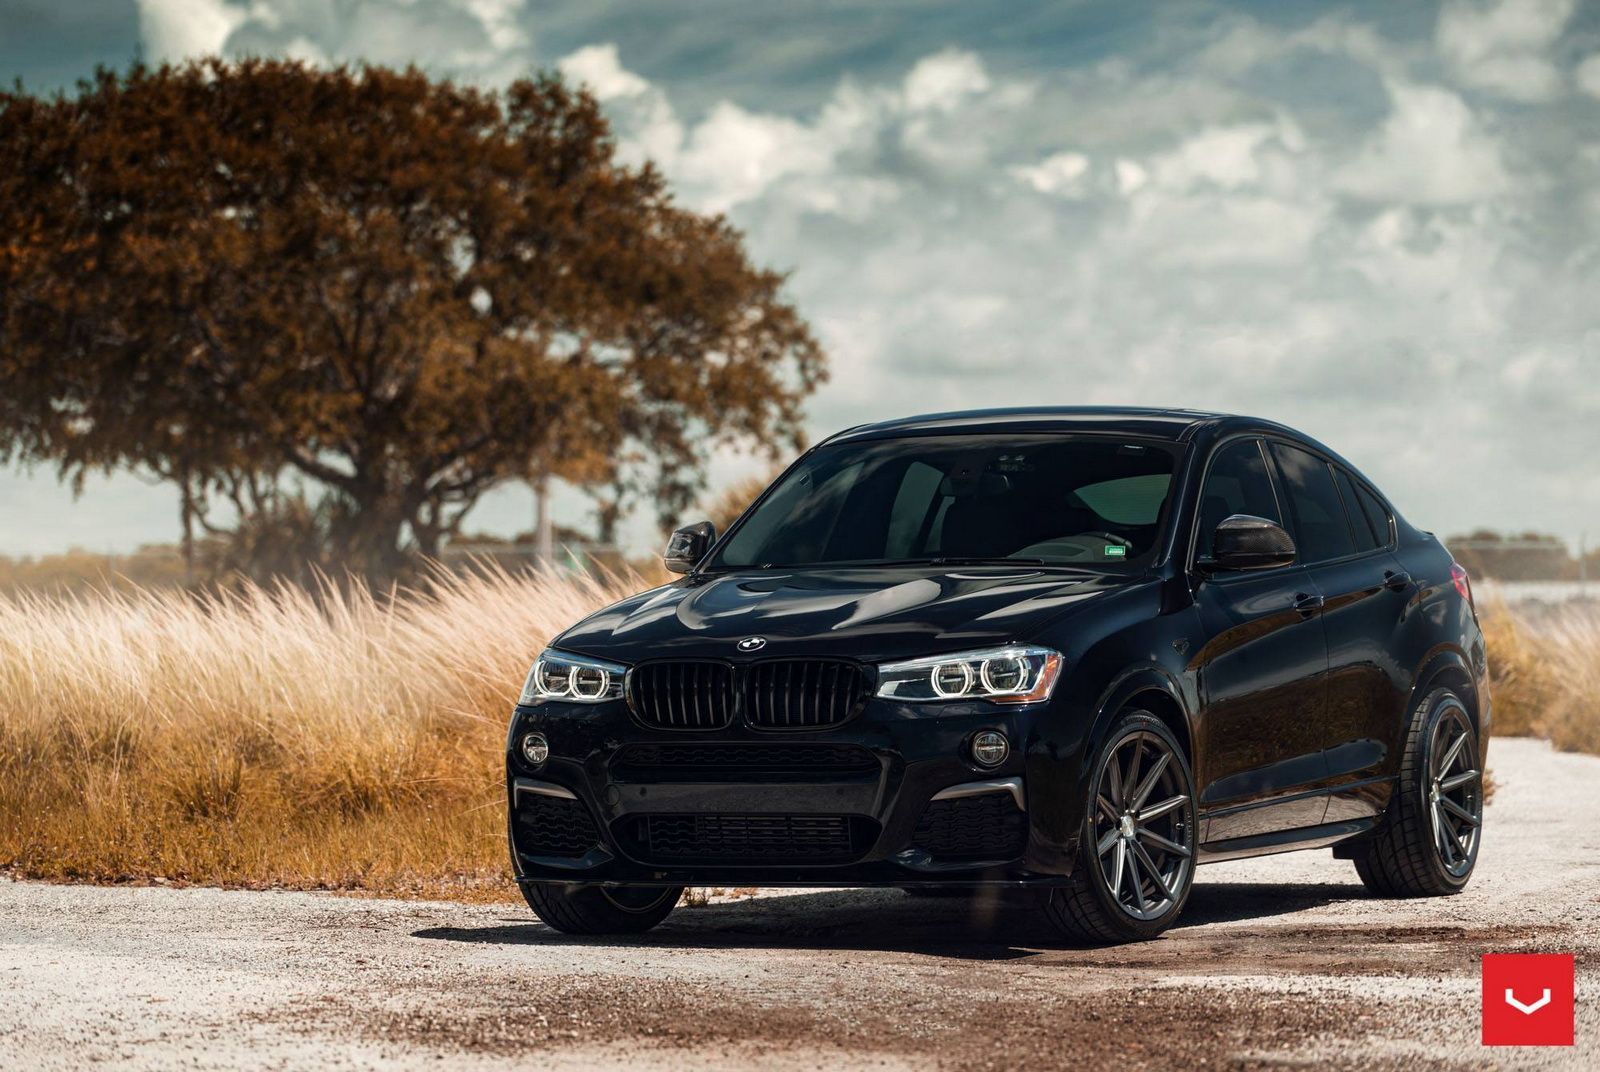 BMW X4 M40i Dresses Up With Vossen Wheels